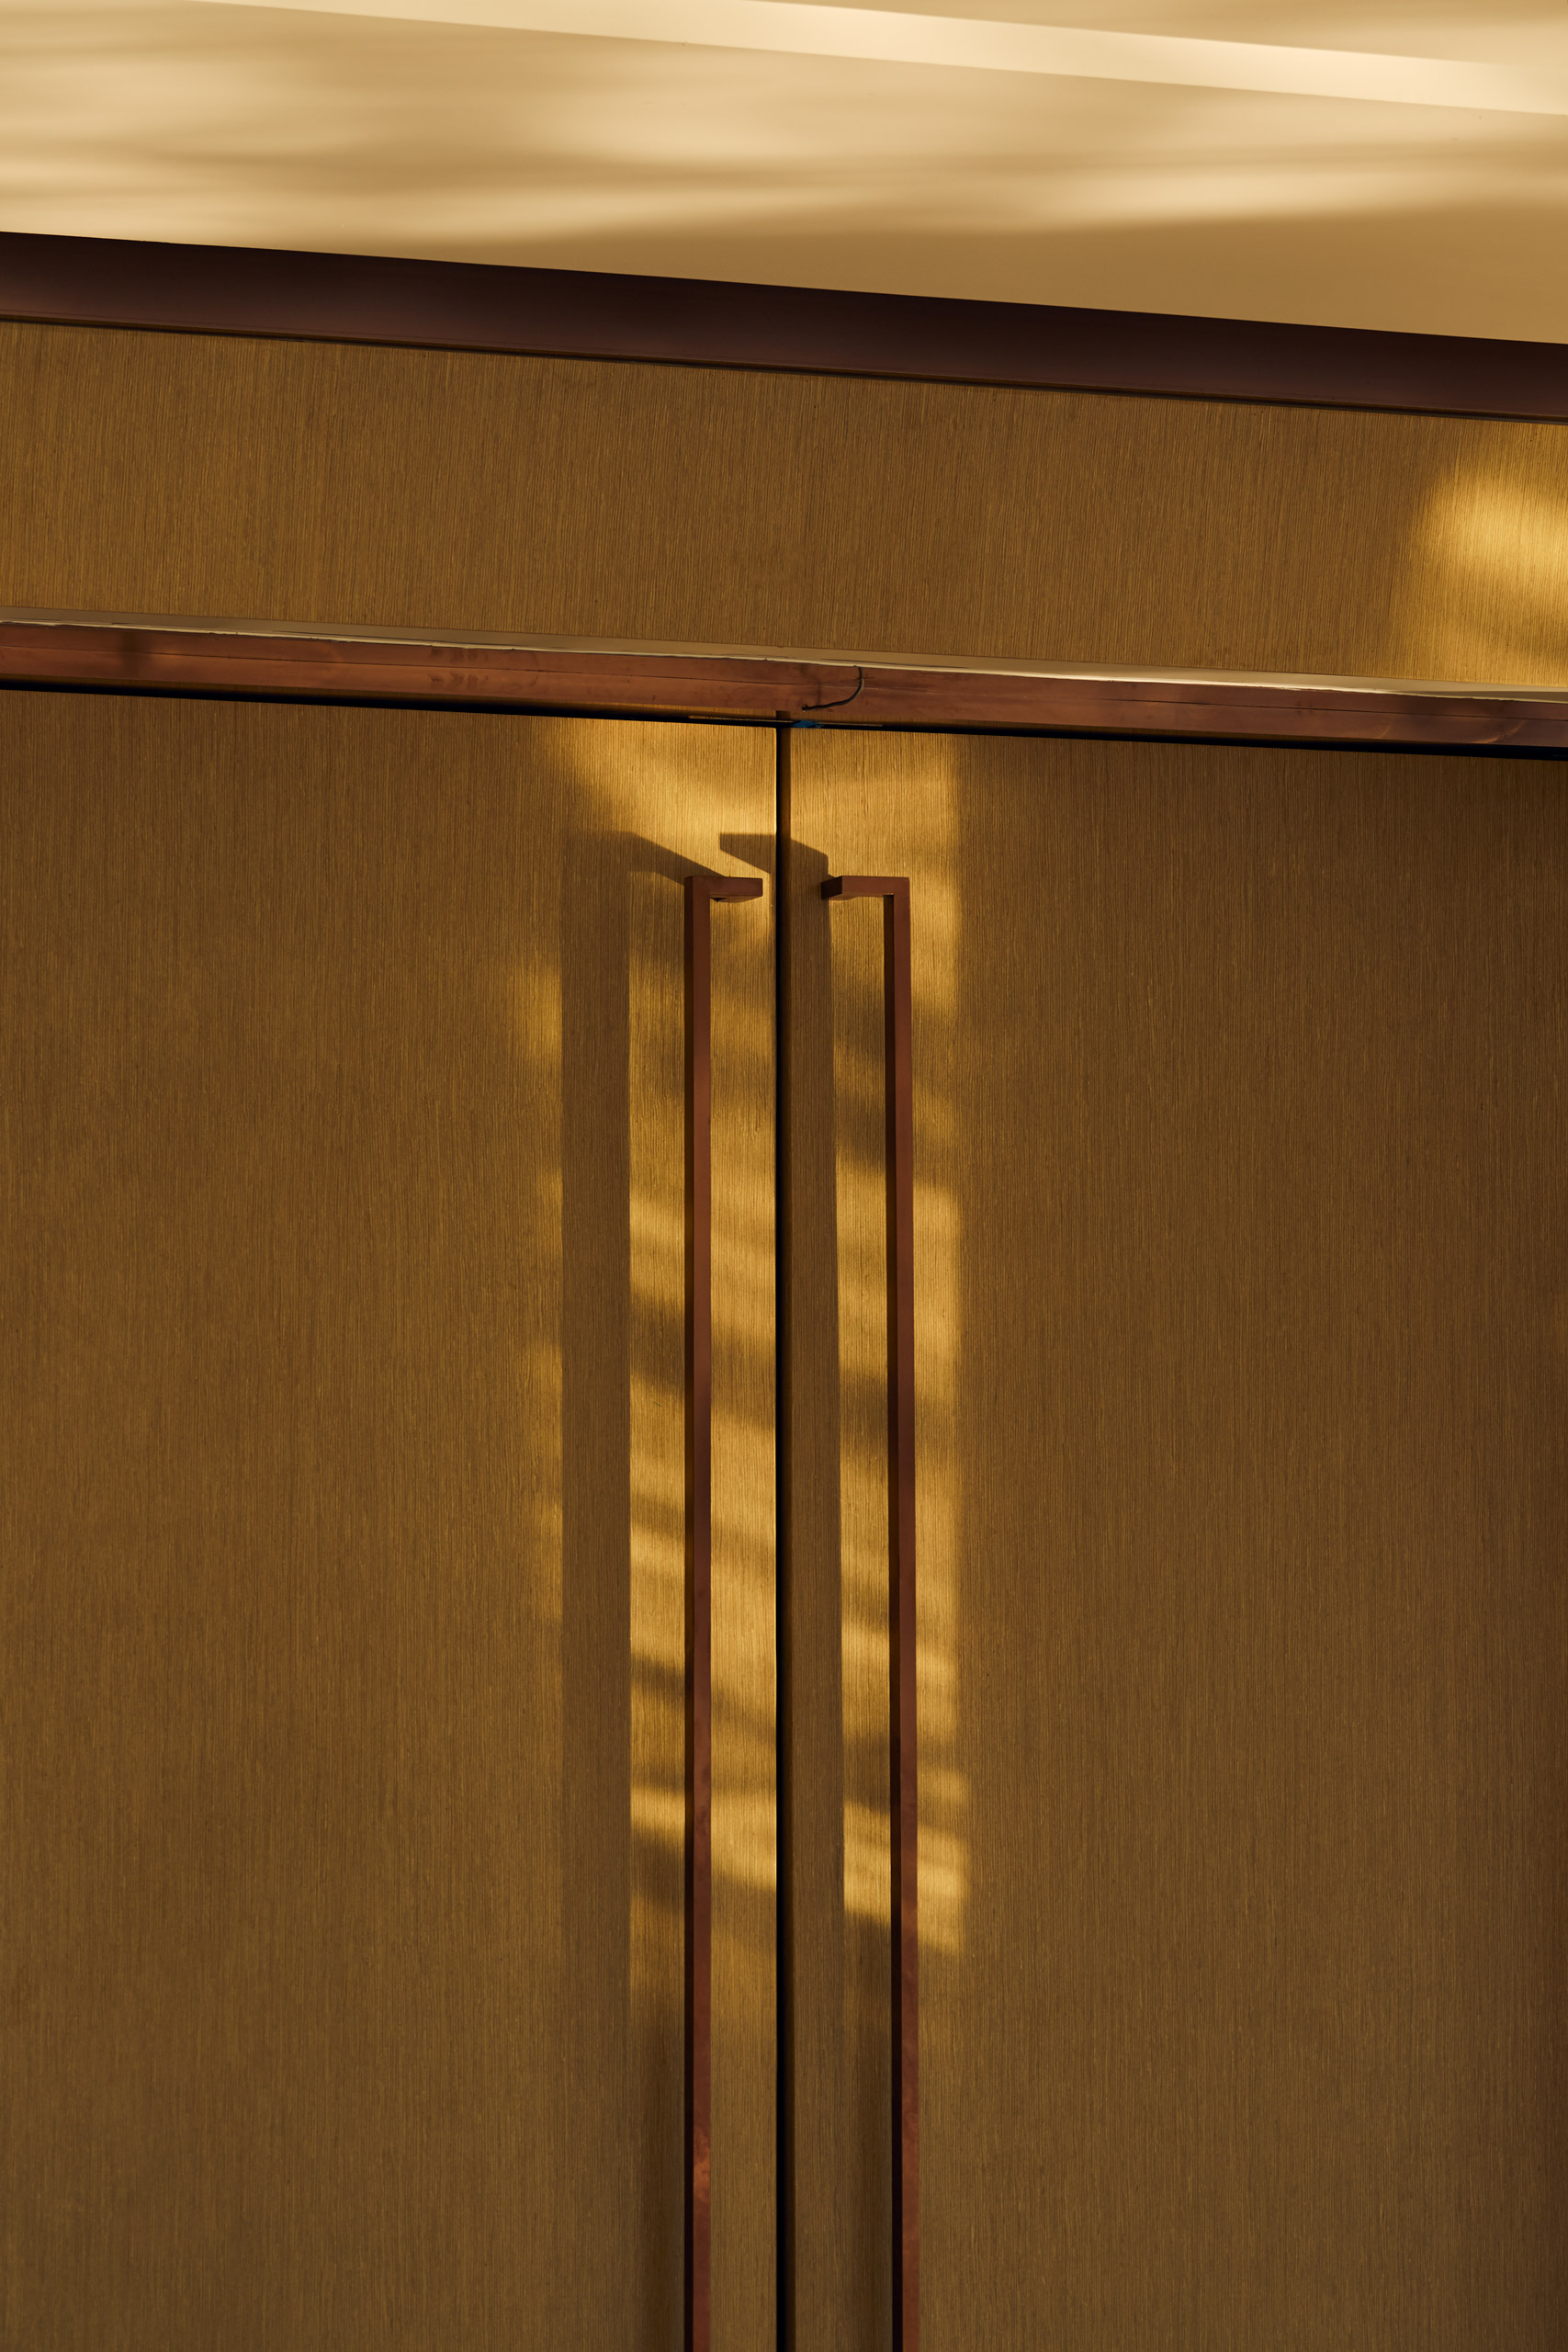 Sunlight on wooden doors